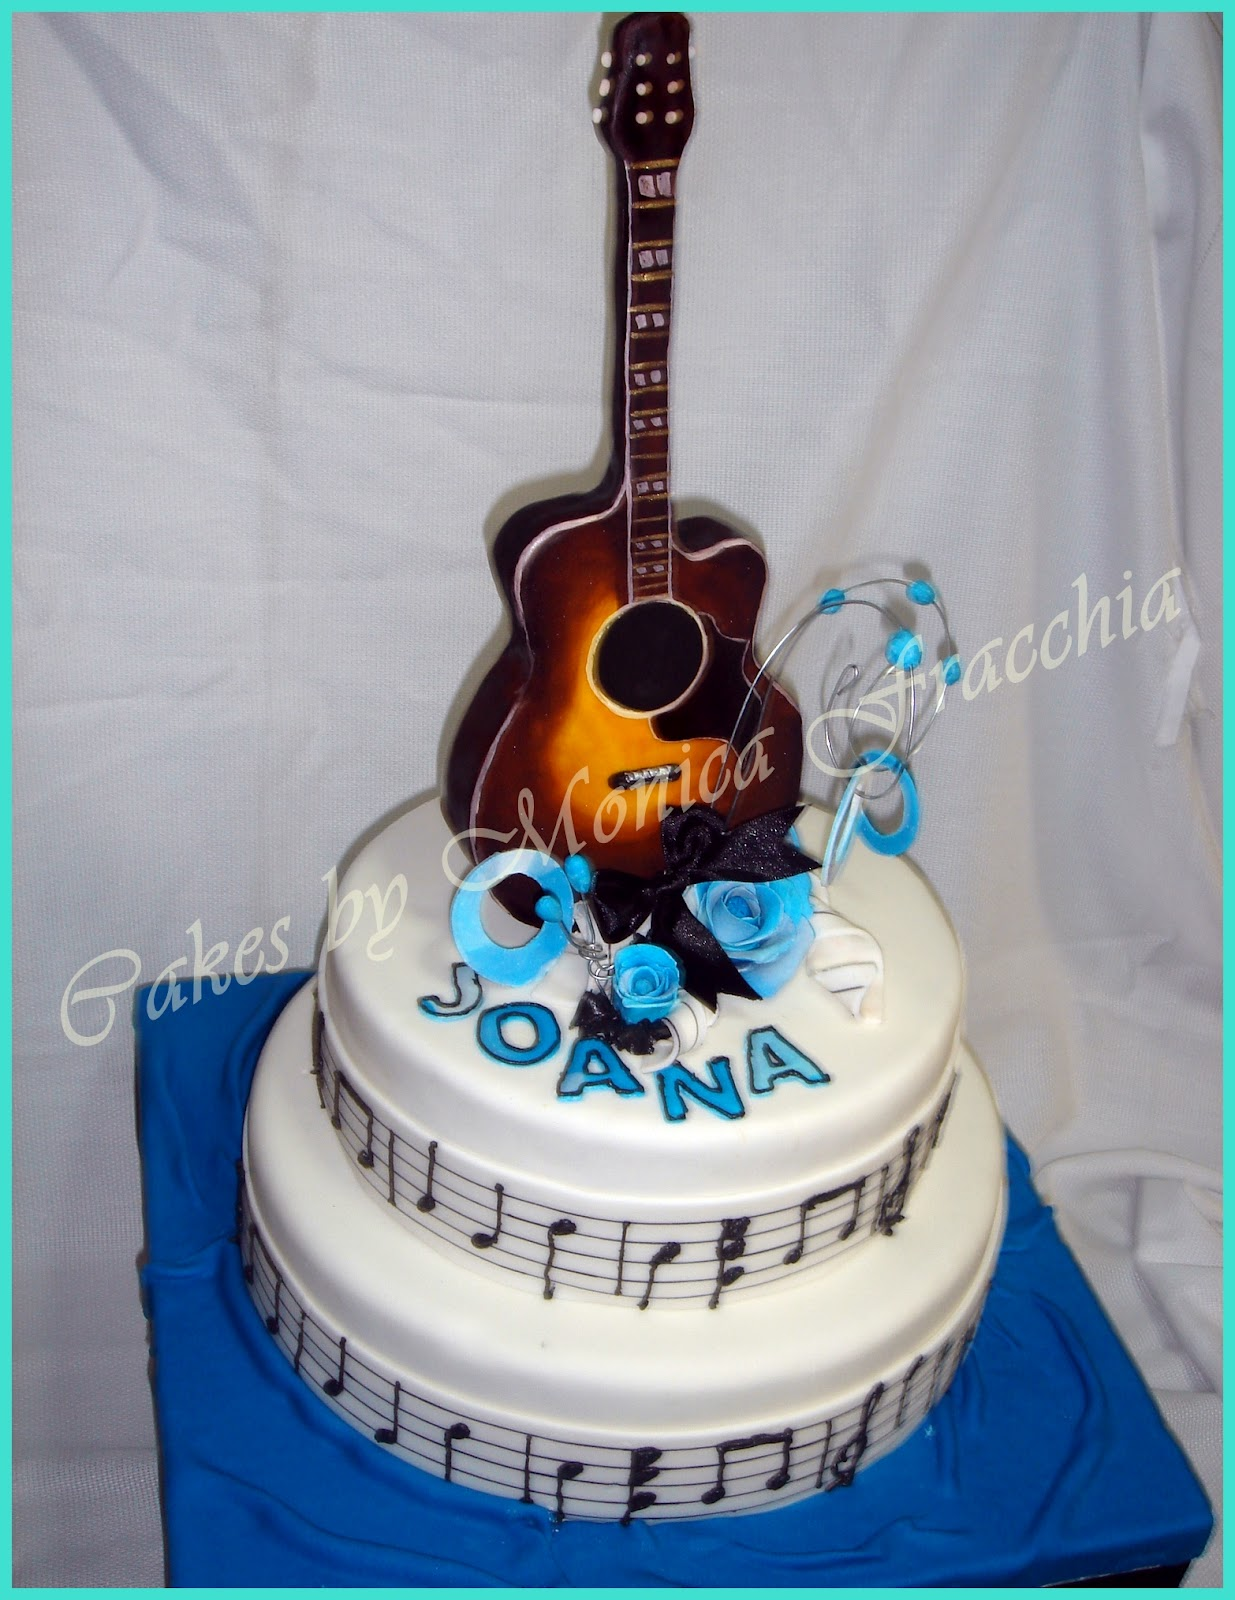 Guitarras Decoradas Tortas Cakes By Monica Fracchia Torta Decorada Guitarra